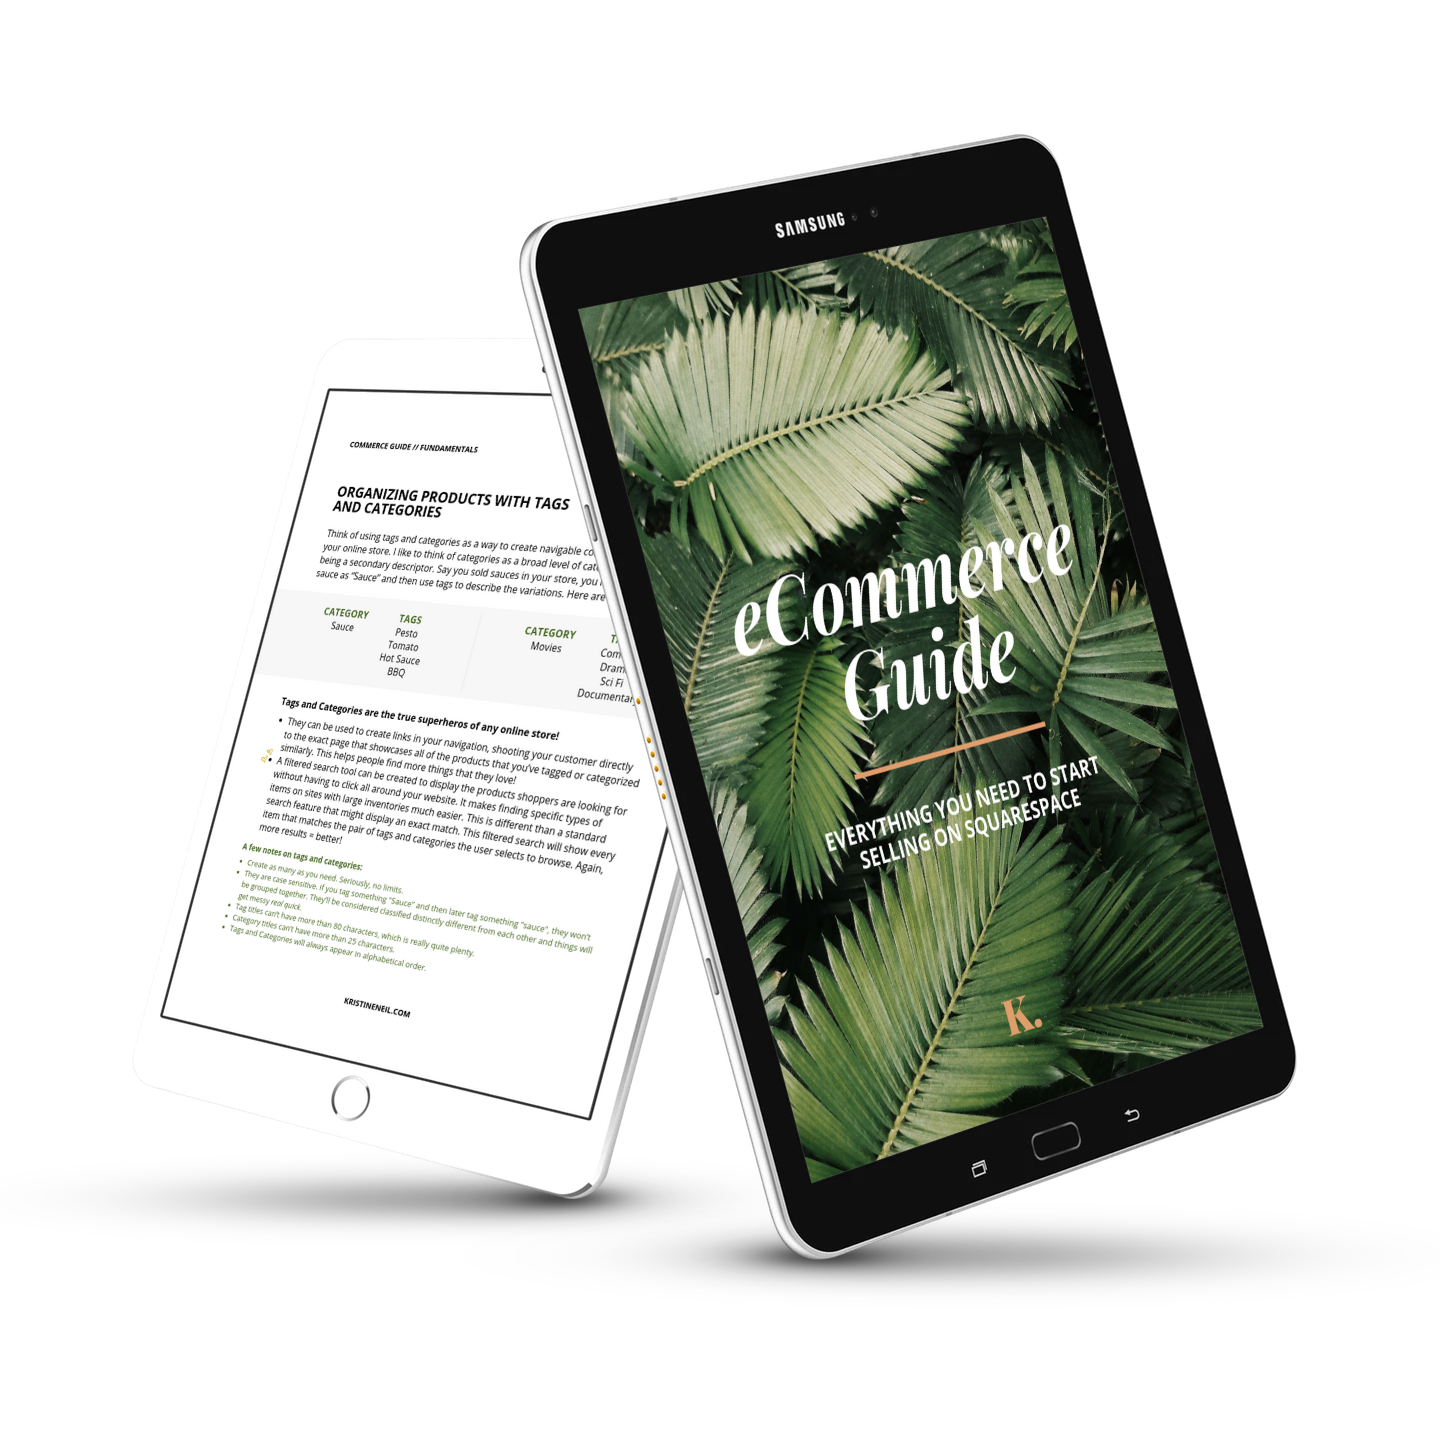 ecommerce guide - kristine neil - squarespace expert.png